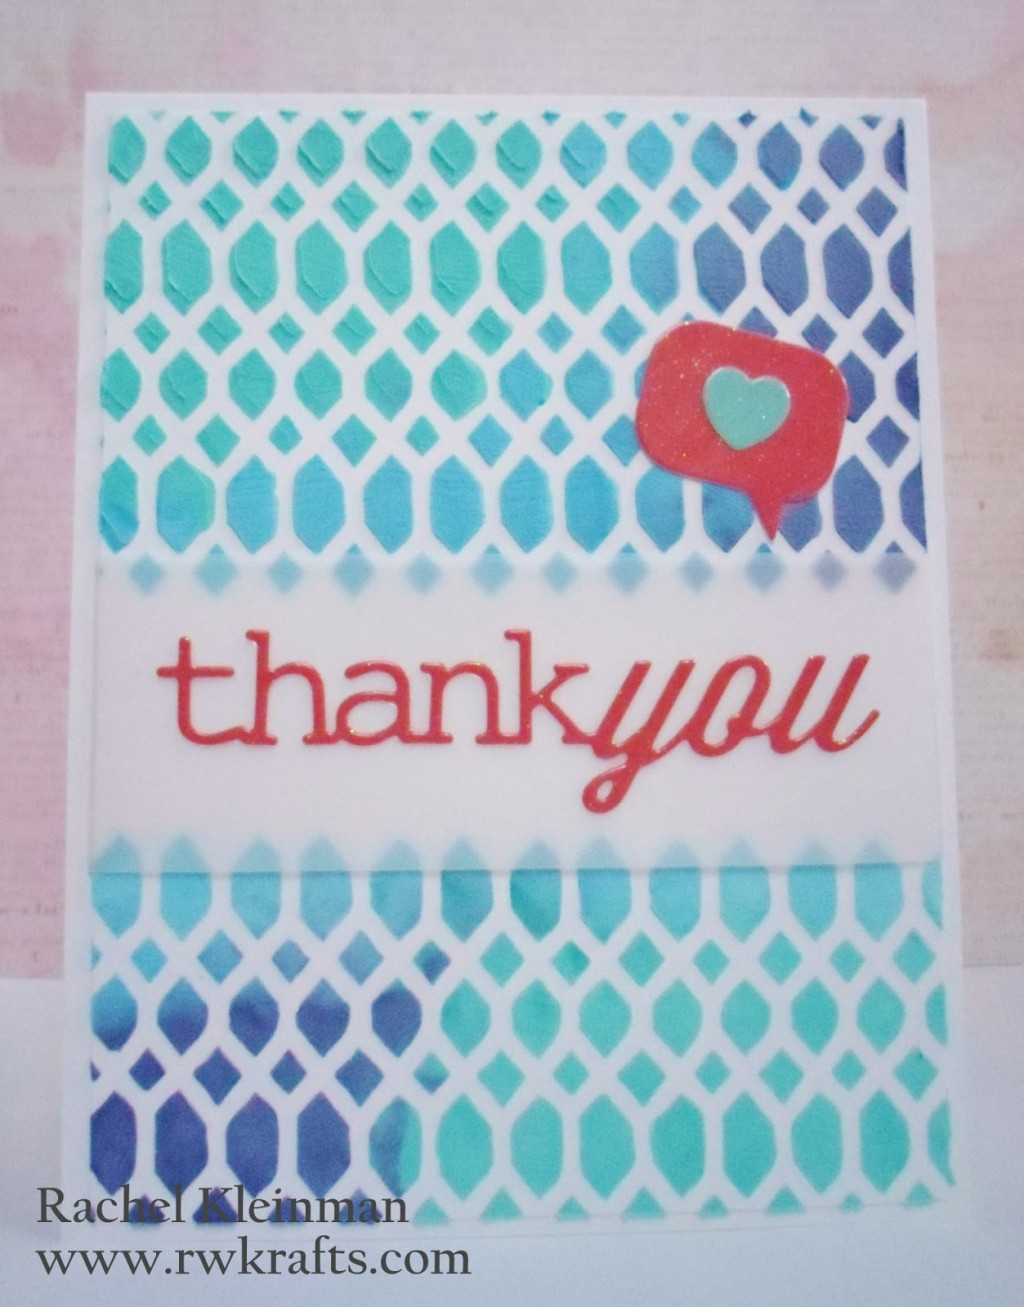 Tutorial - Embossing Paste Backgrounds at RW Krafts